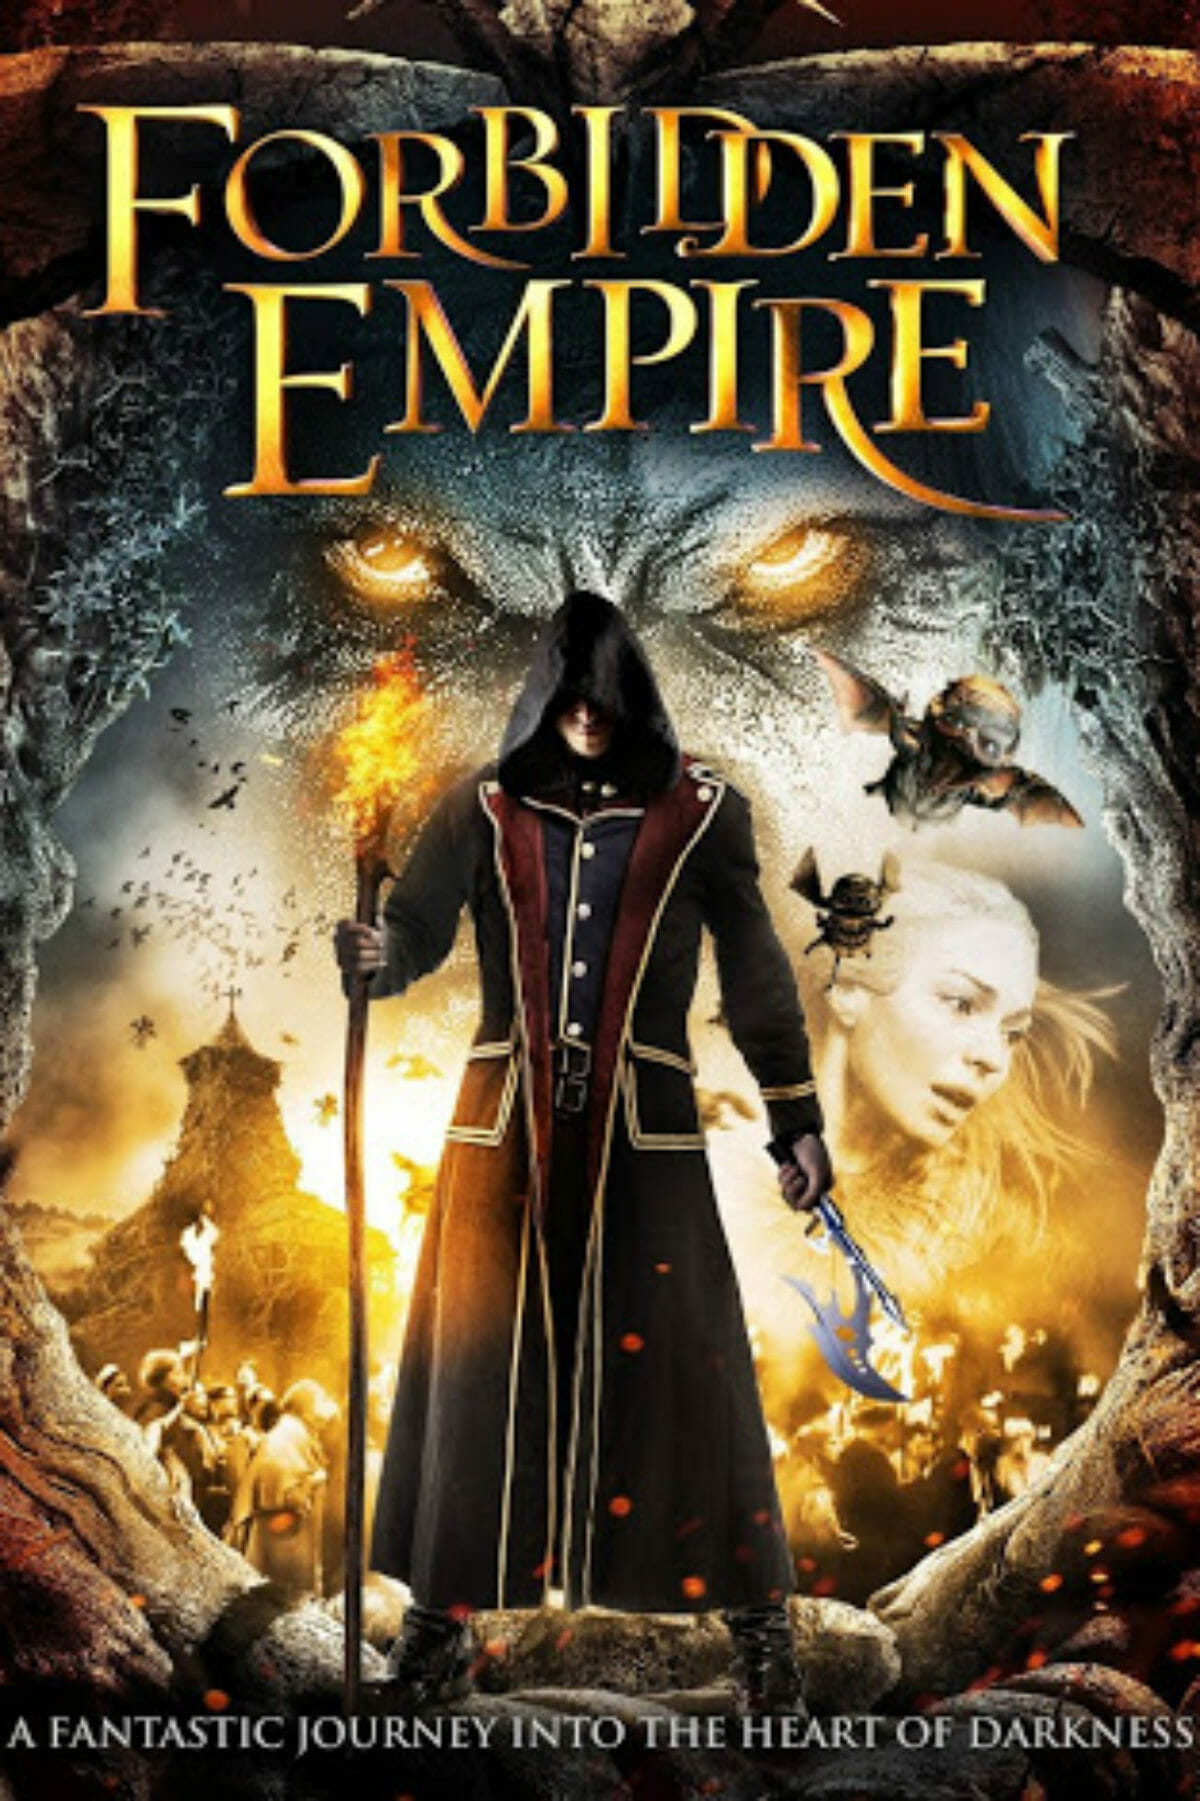 forbidden empire full movie in hindi dubbed free download 300mb